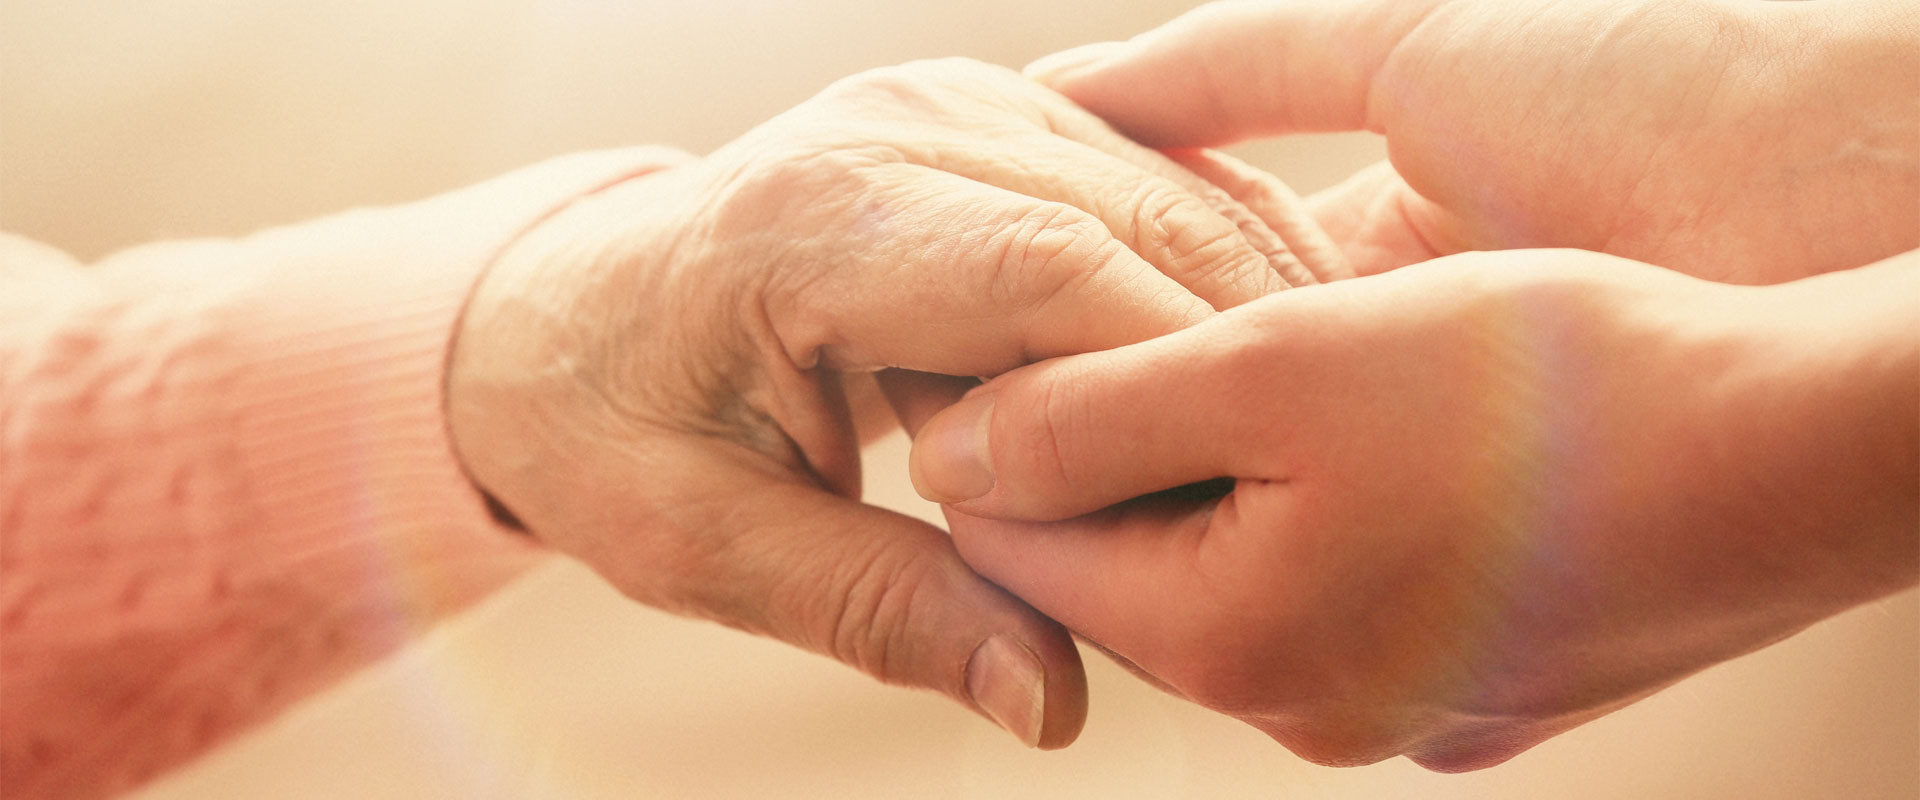 Caring for you and your family